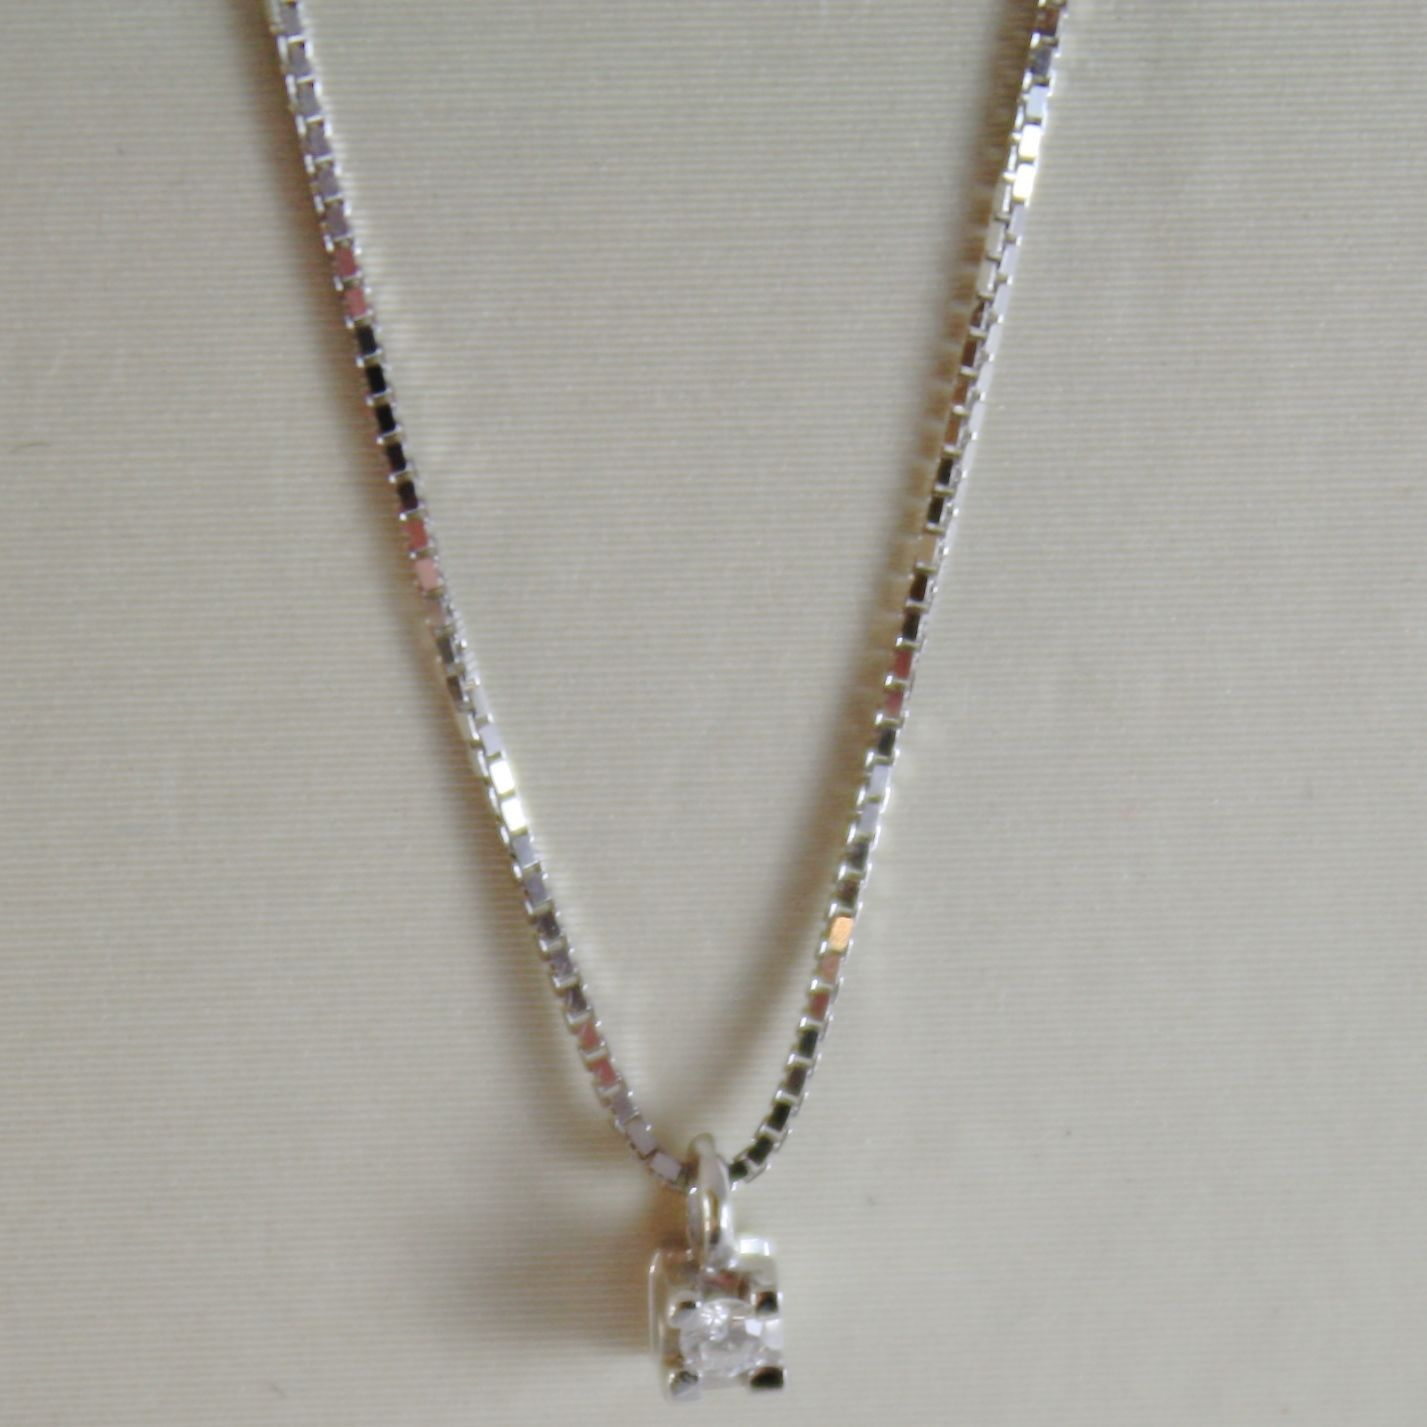 18K WHITE GOLD MINI NECKLACE WITH DIAMOND 0.01 CT, VENETIAN CHAIN MADE IN ITALY